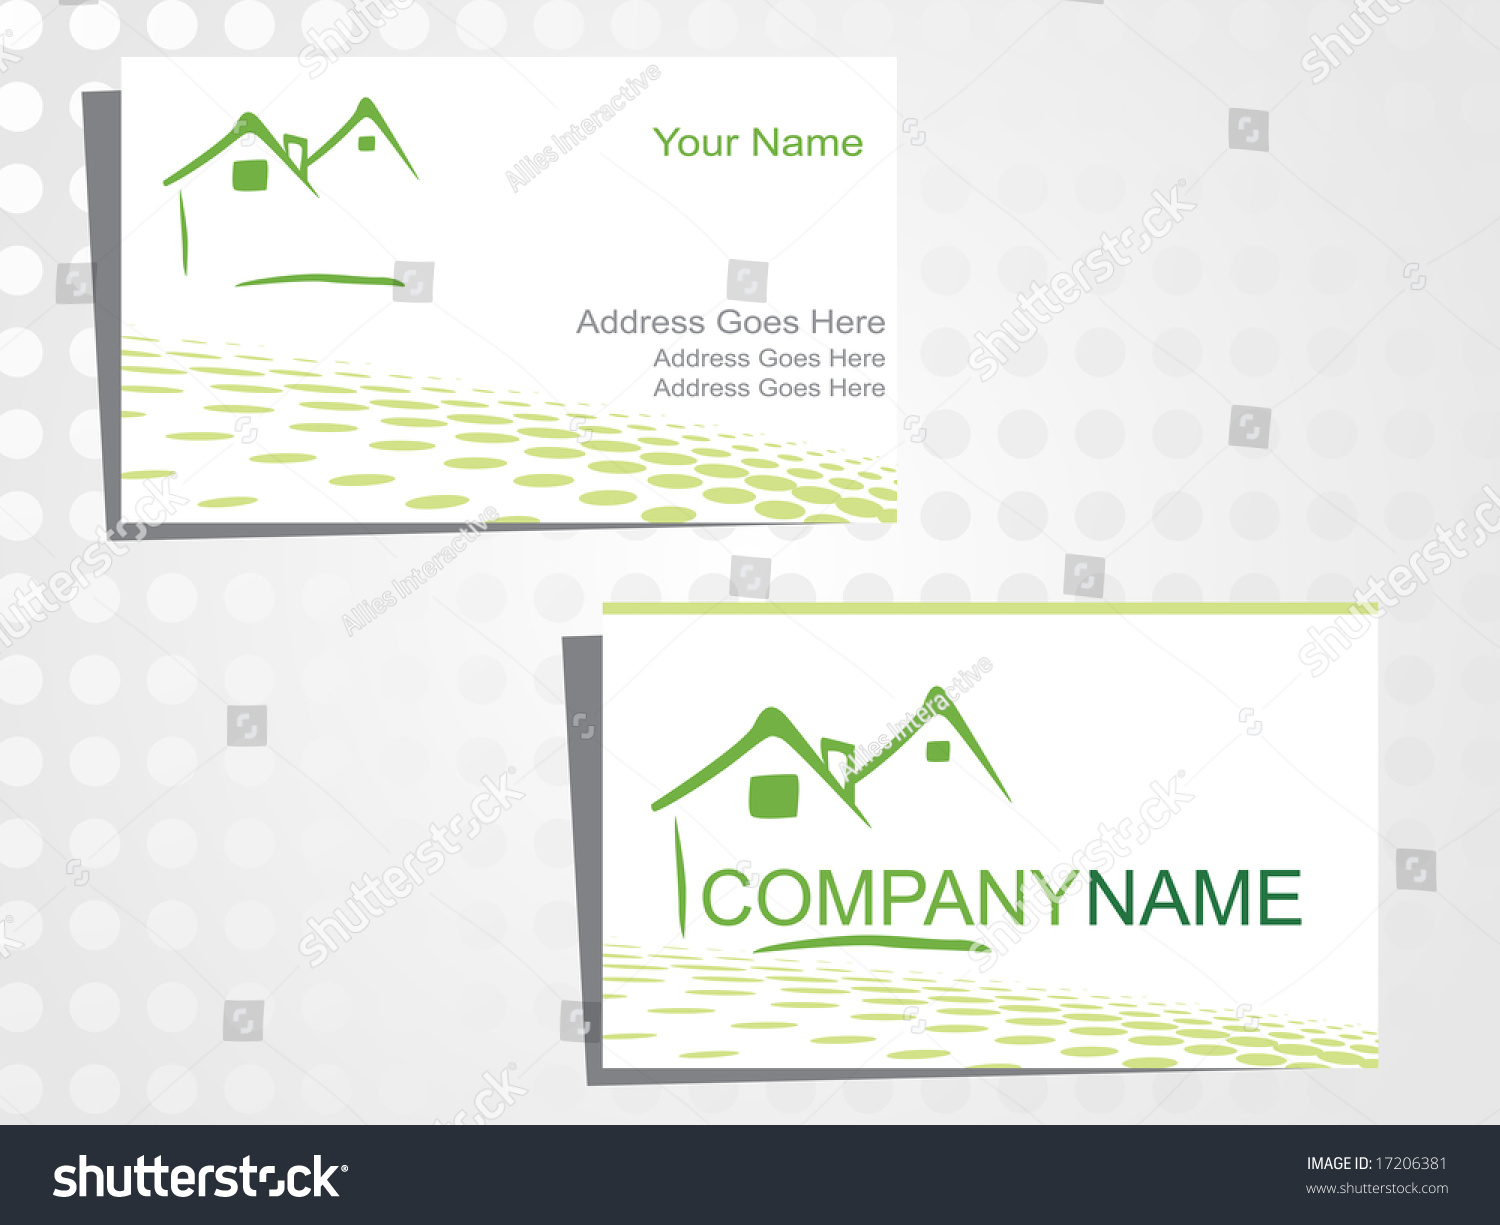 Business Cards With Free Shipping Gallery - Free Business Cards